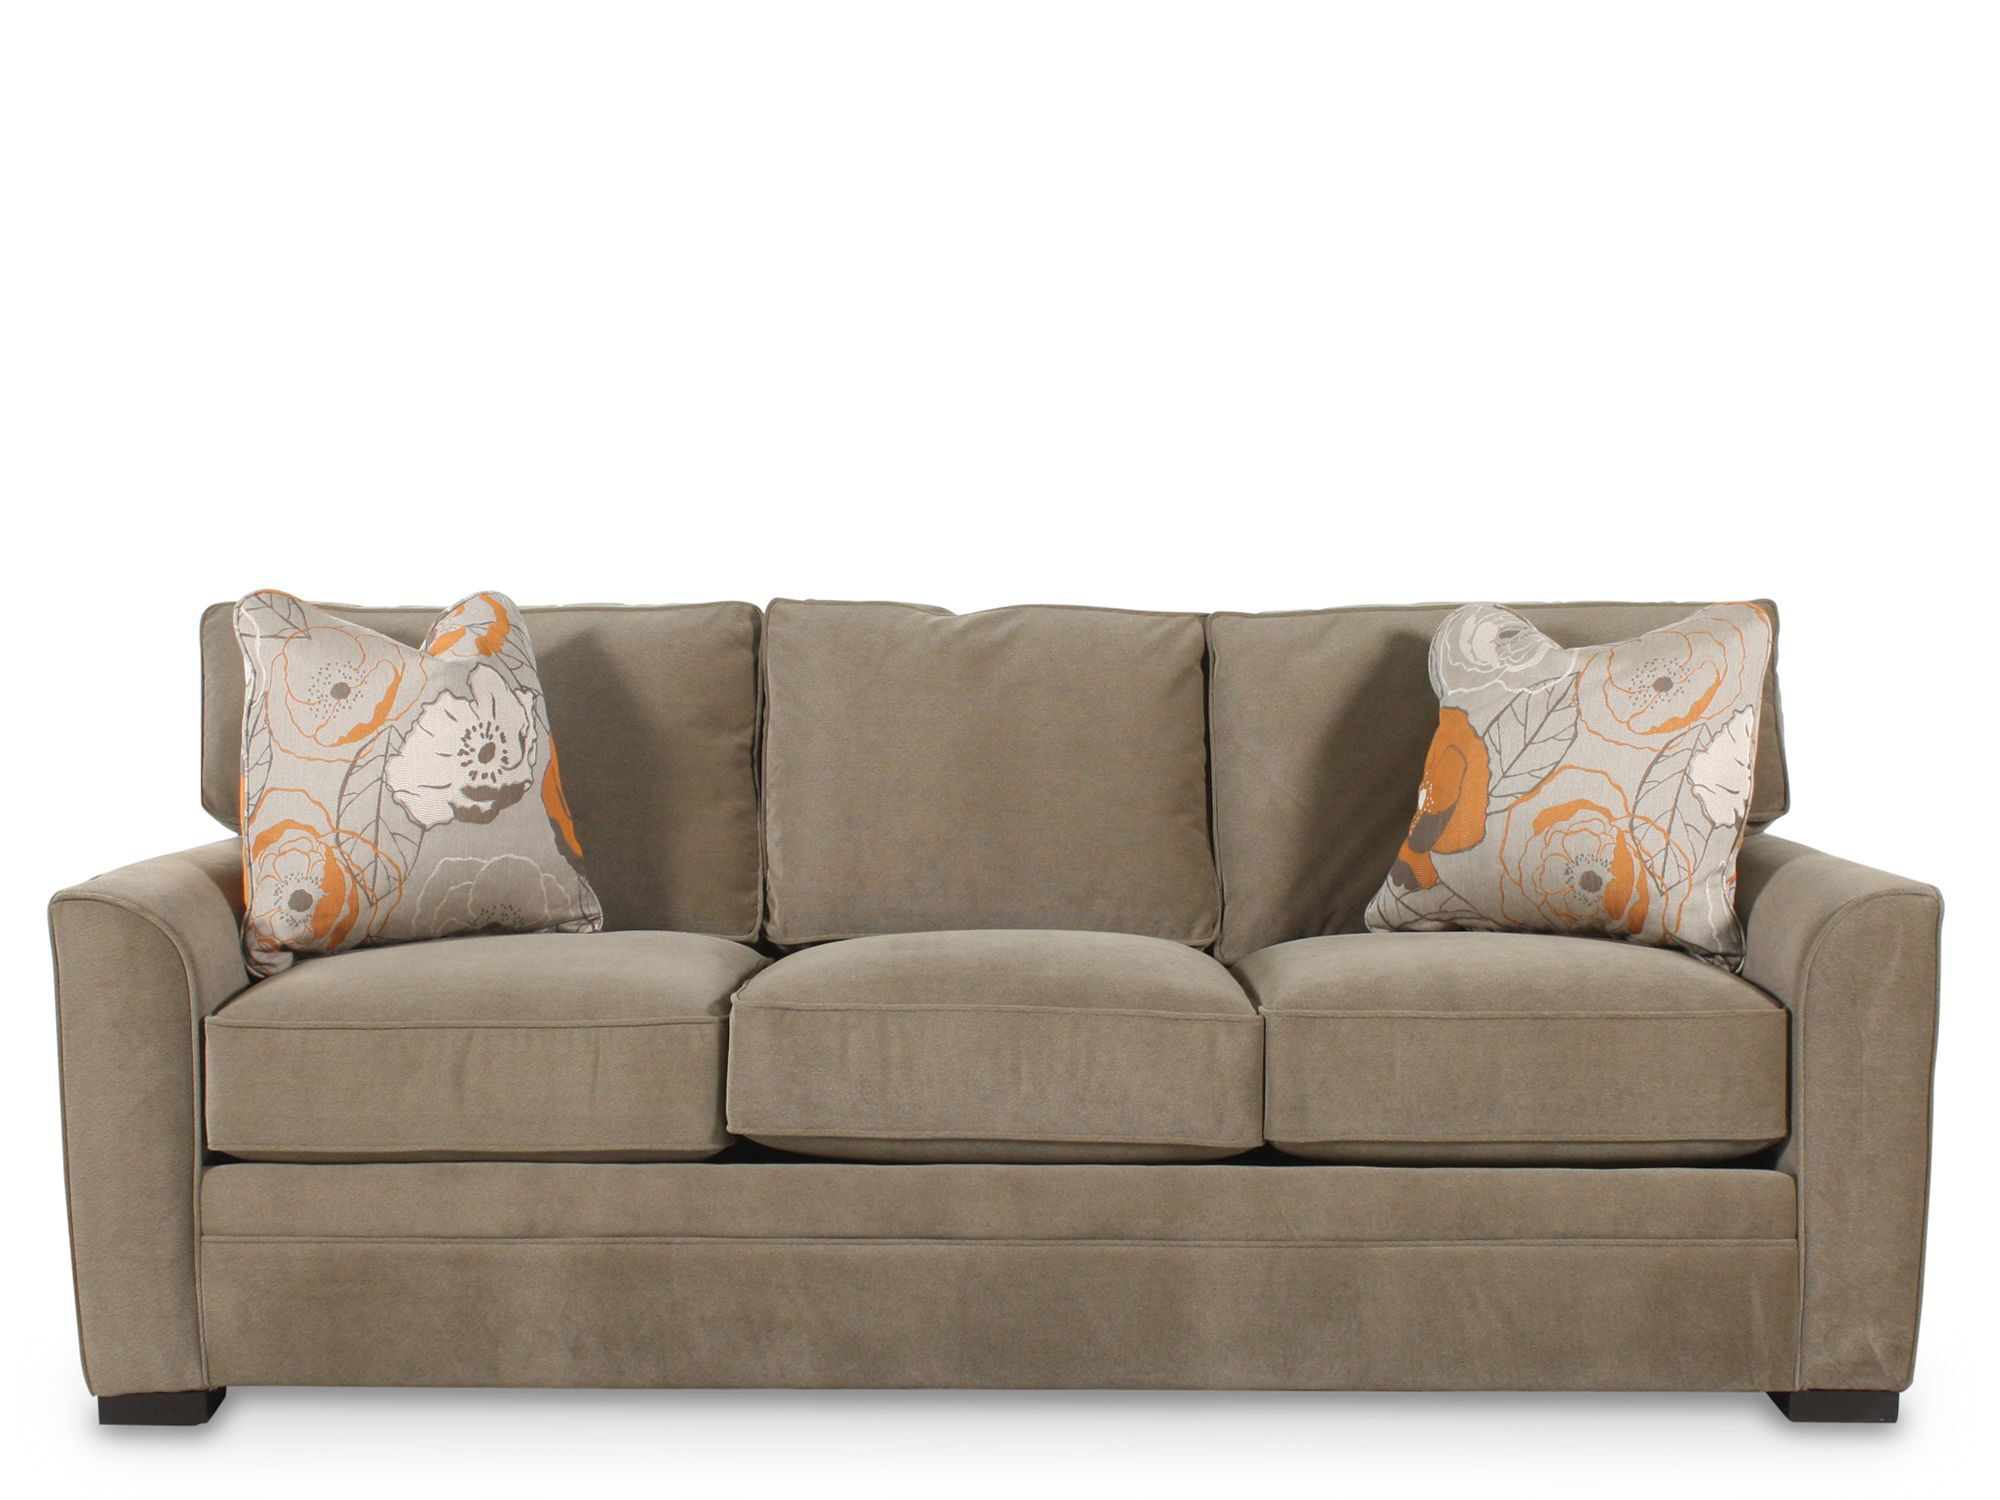 Traditional Queen Sleeper Sofa in Brown  Mathis Brothers Furniture